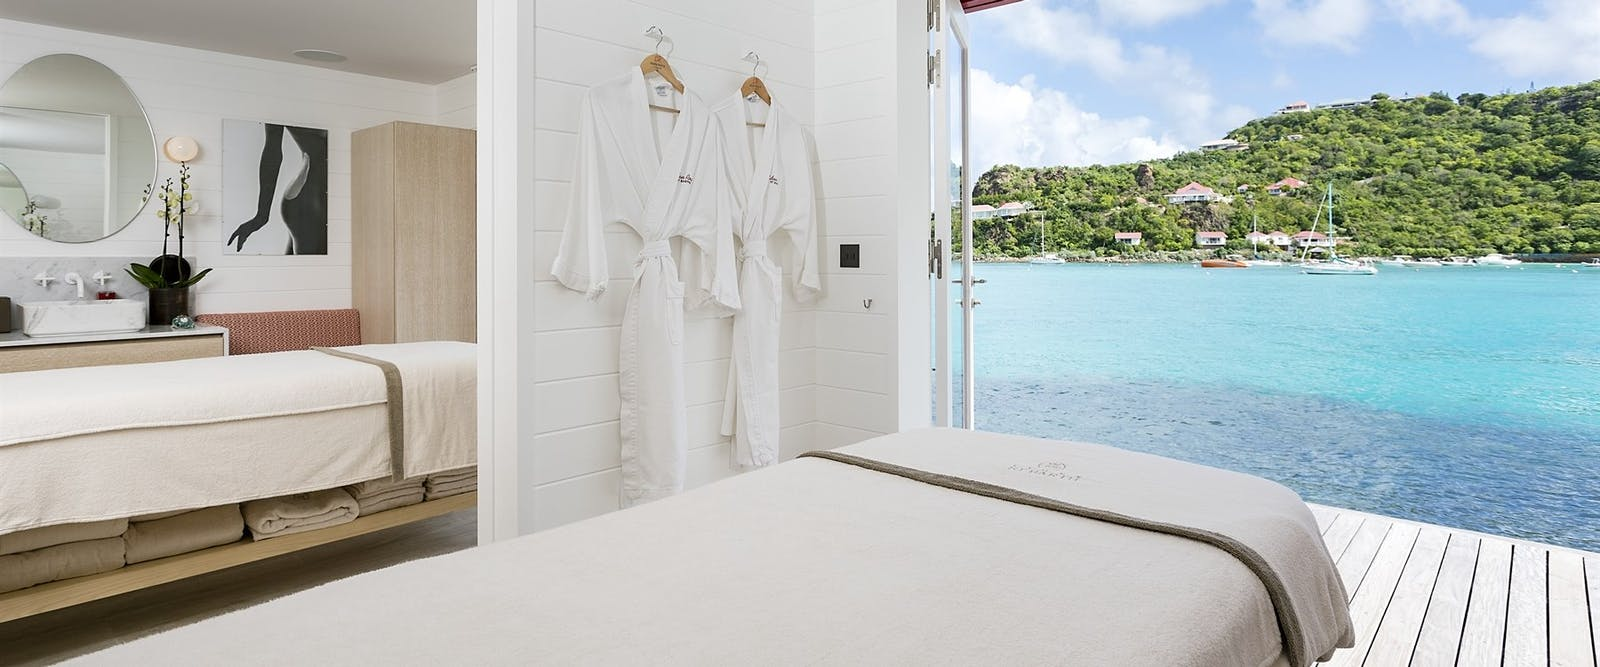 Spa Treatment Room at Eden Rock, St Barths